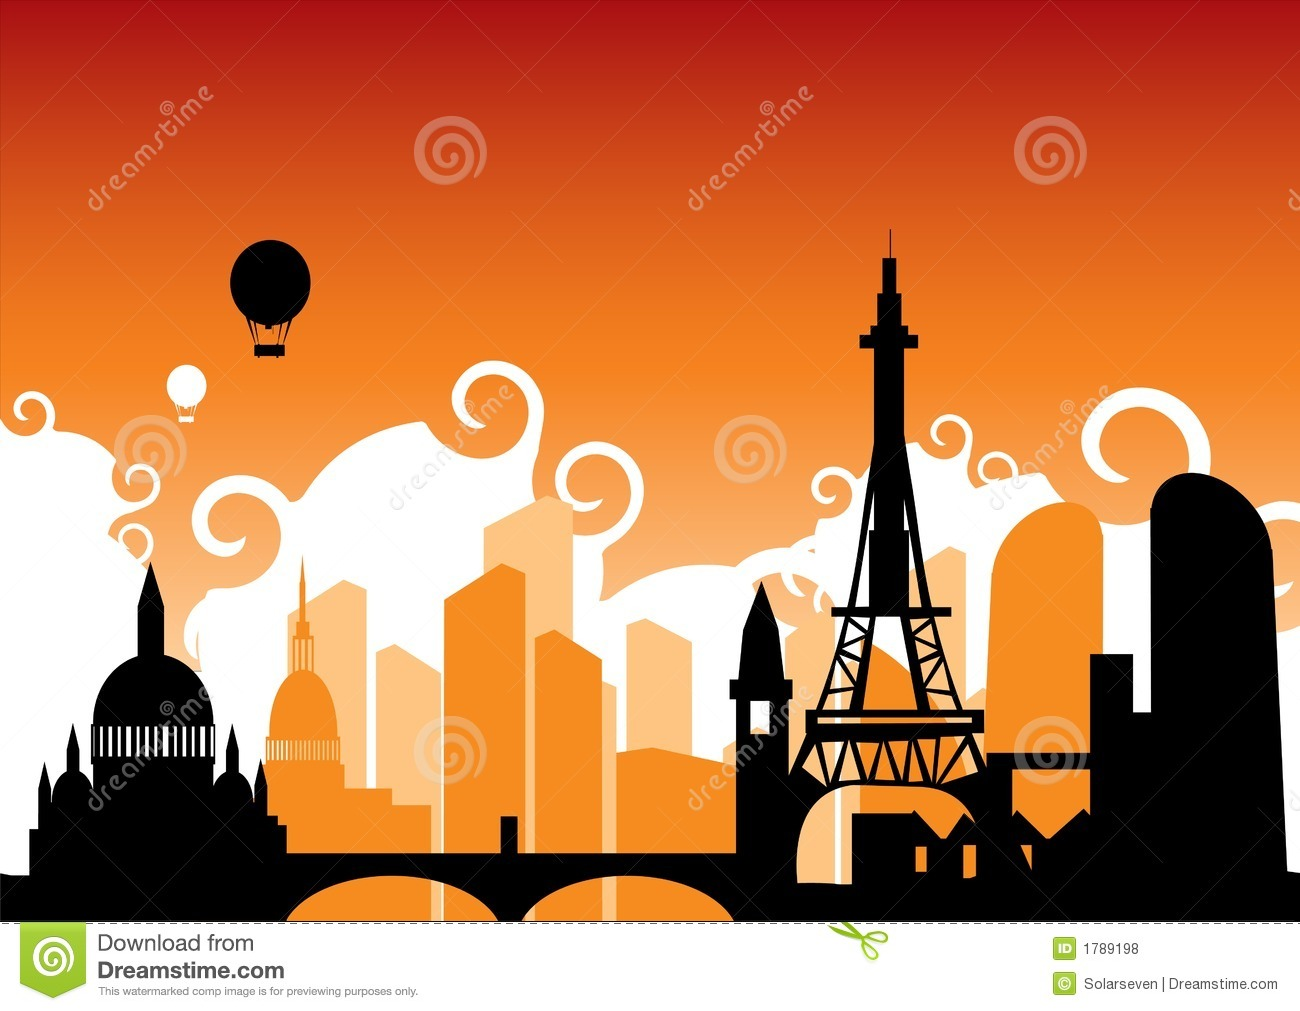 Paris Skyline Royalty Free Stock Photos - Image: 1789198